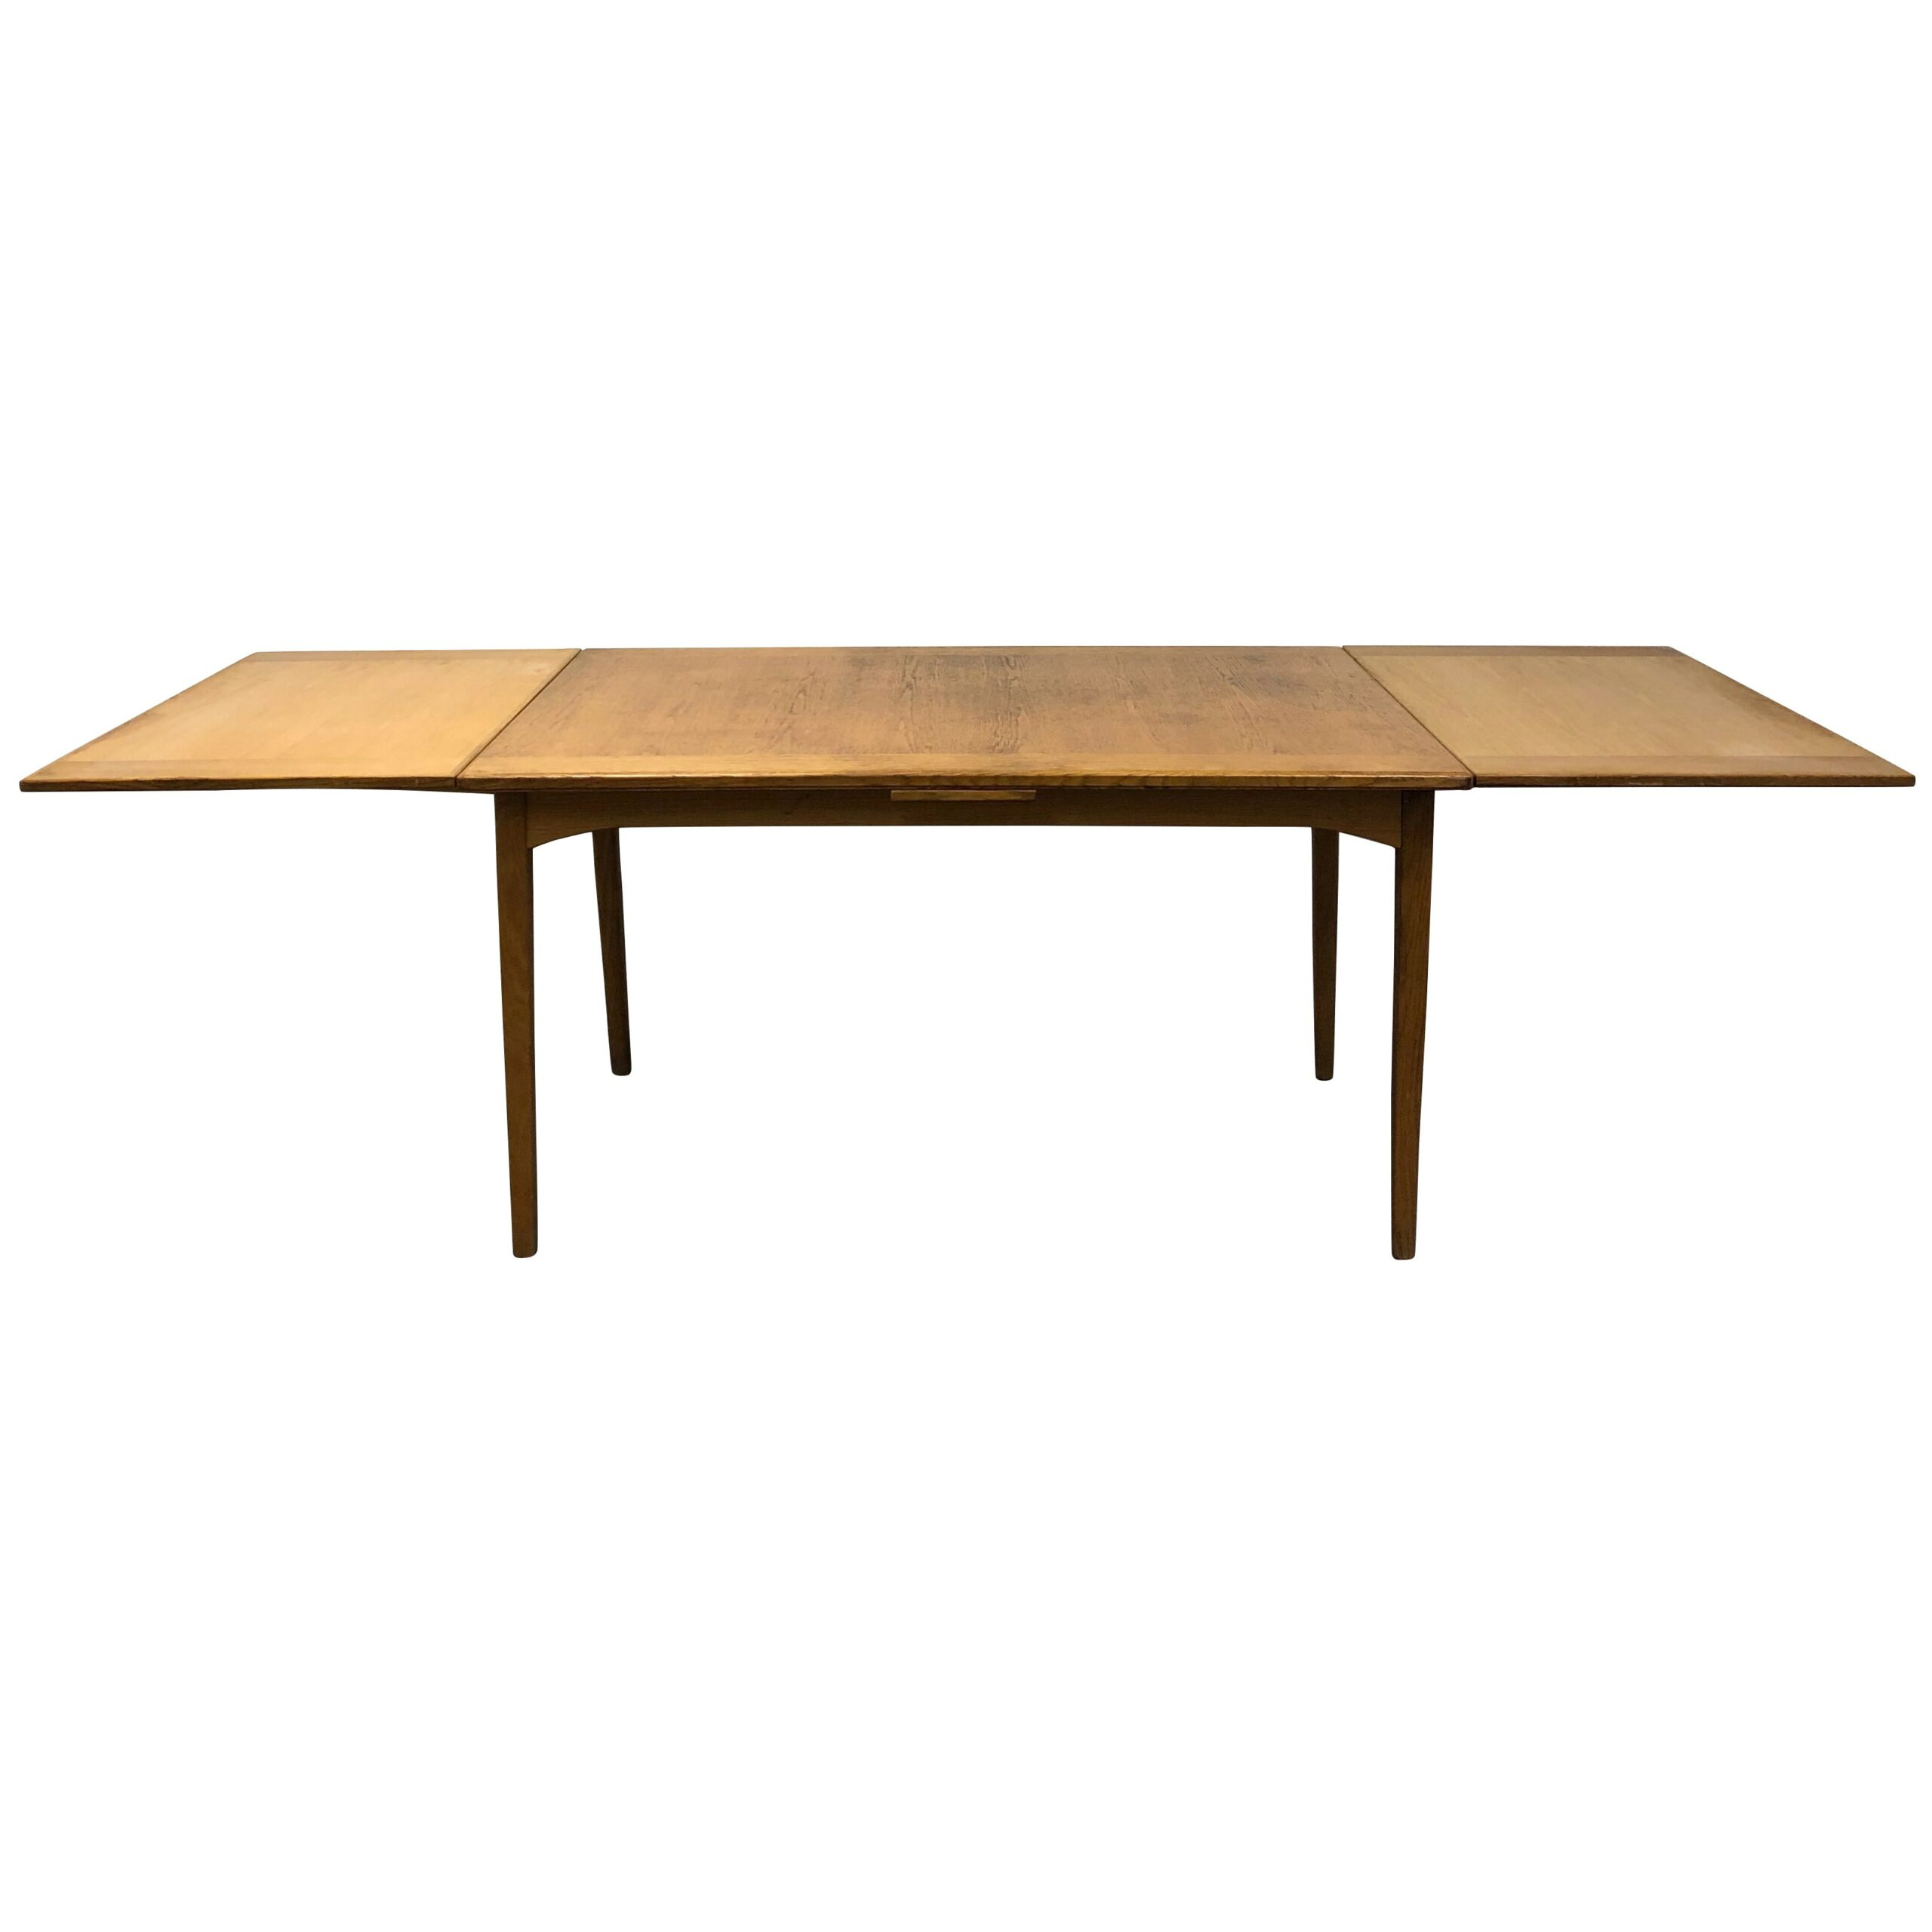 20th Century Swedish Walnut Extendable Dining Table by Carl Malmsten